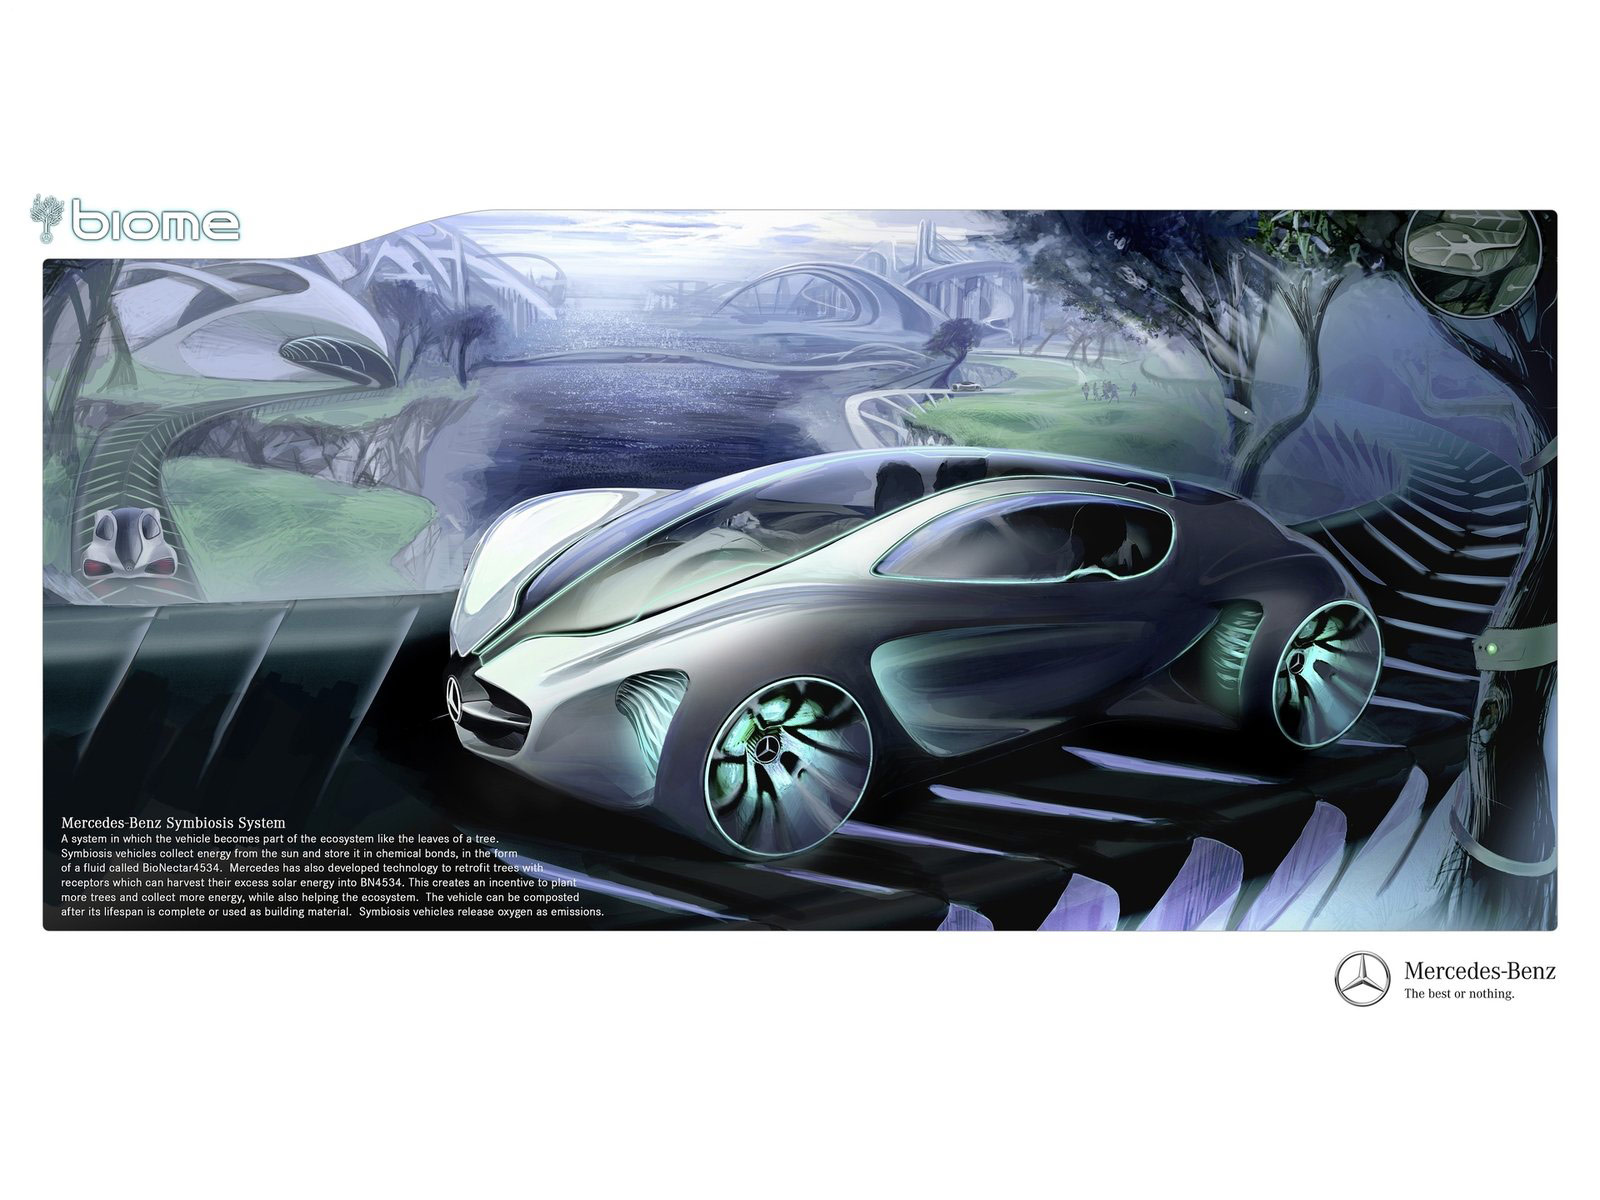 Toyota Carlsbad Service >> 2010 MERCEDES BENZ Biome Concept accident lawyers info